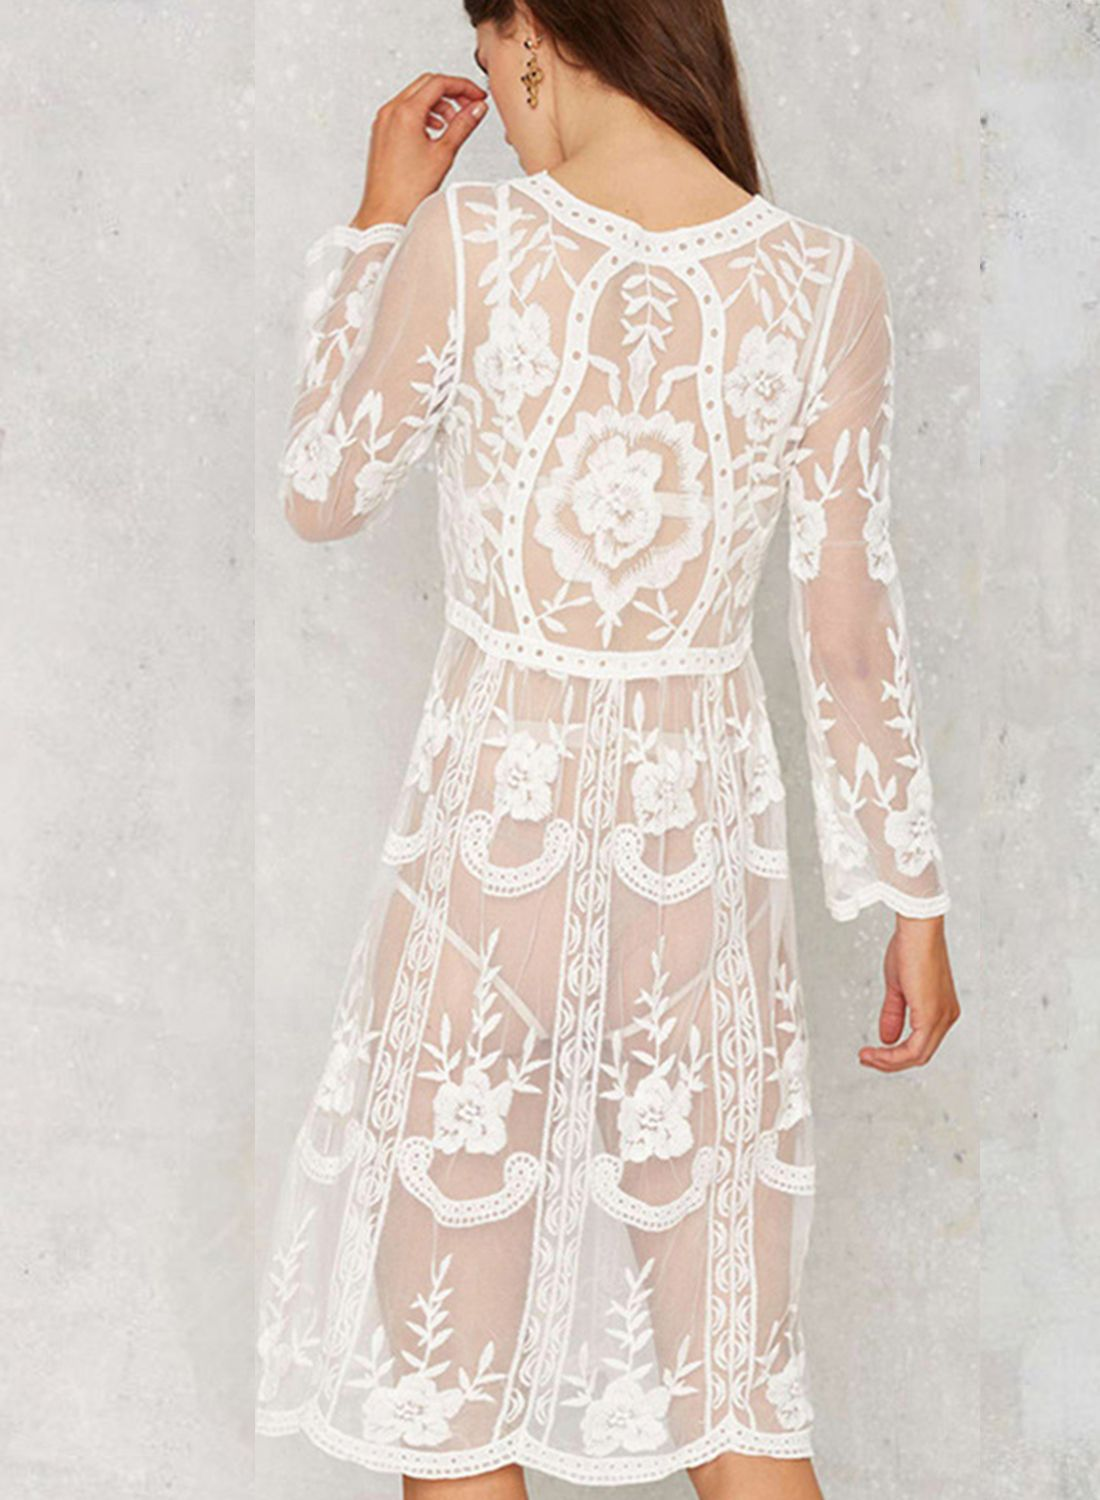 2f11f268c4 Long Sleeve Lace Bikini Cover up Dress in 2019